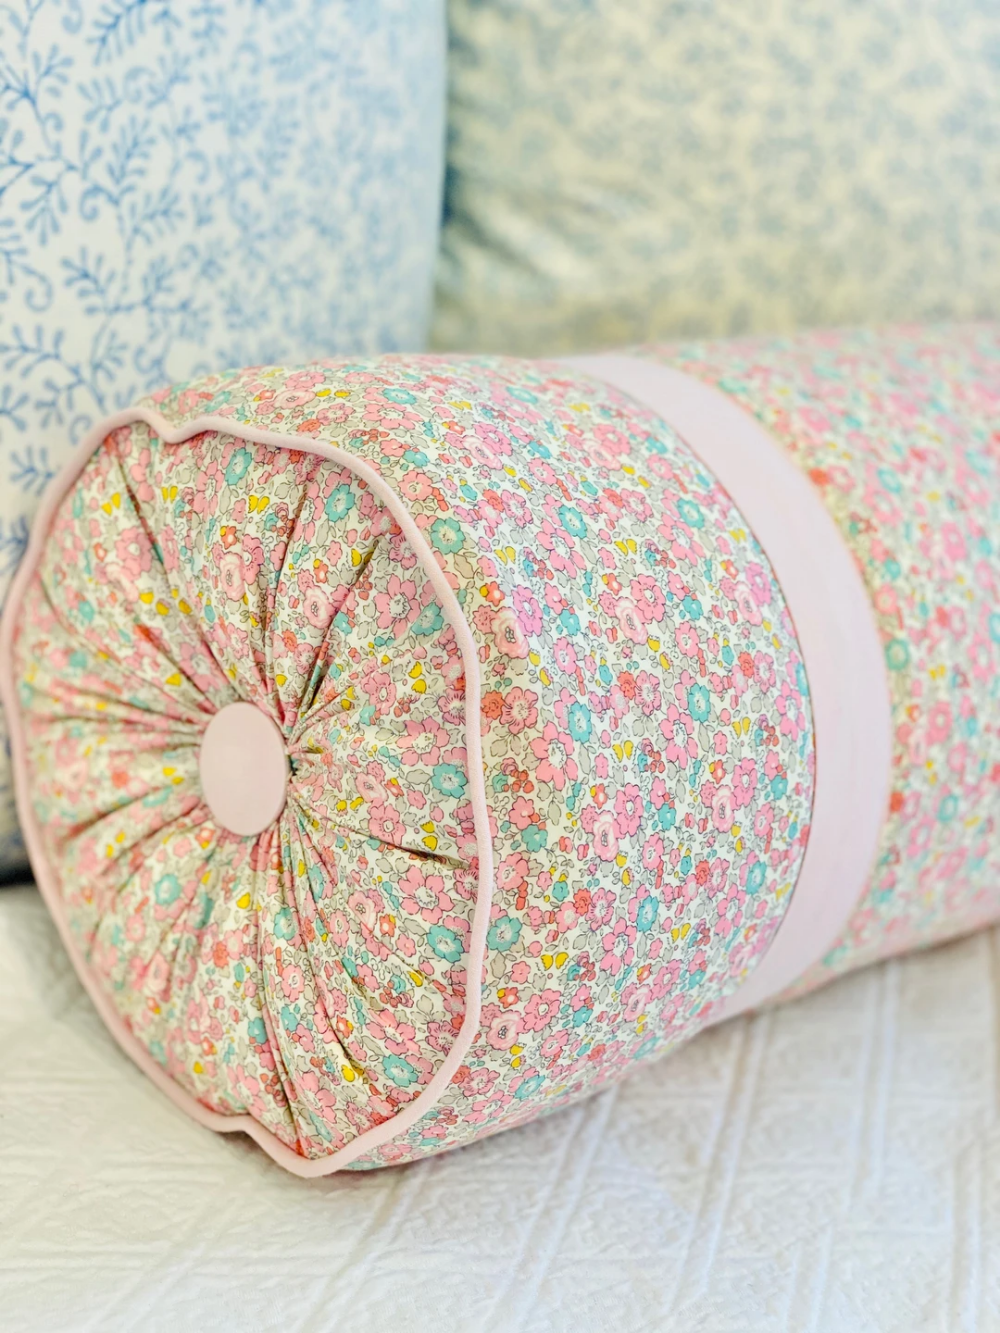 This custom pillow is a total show-stopper!